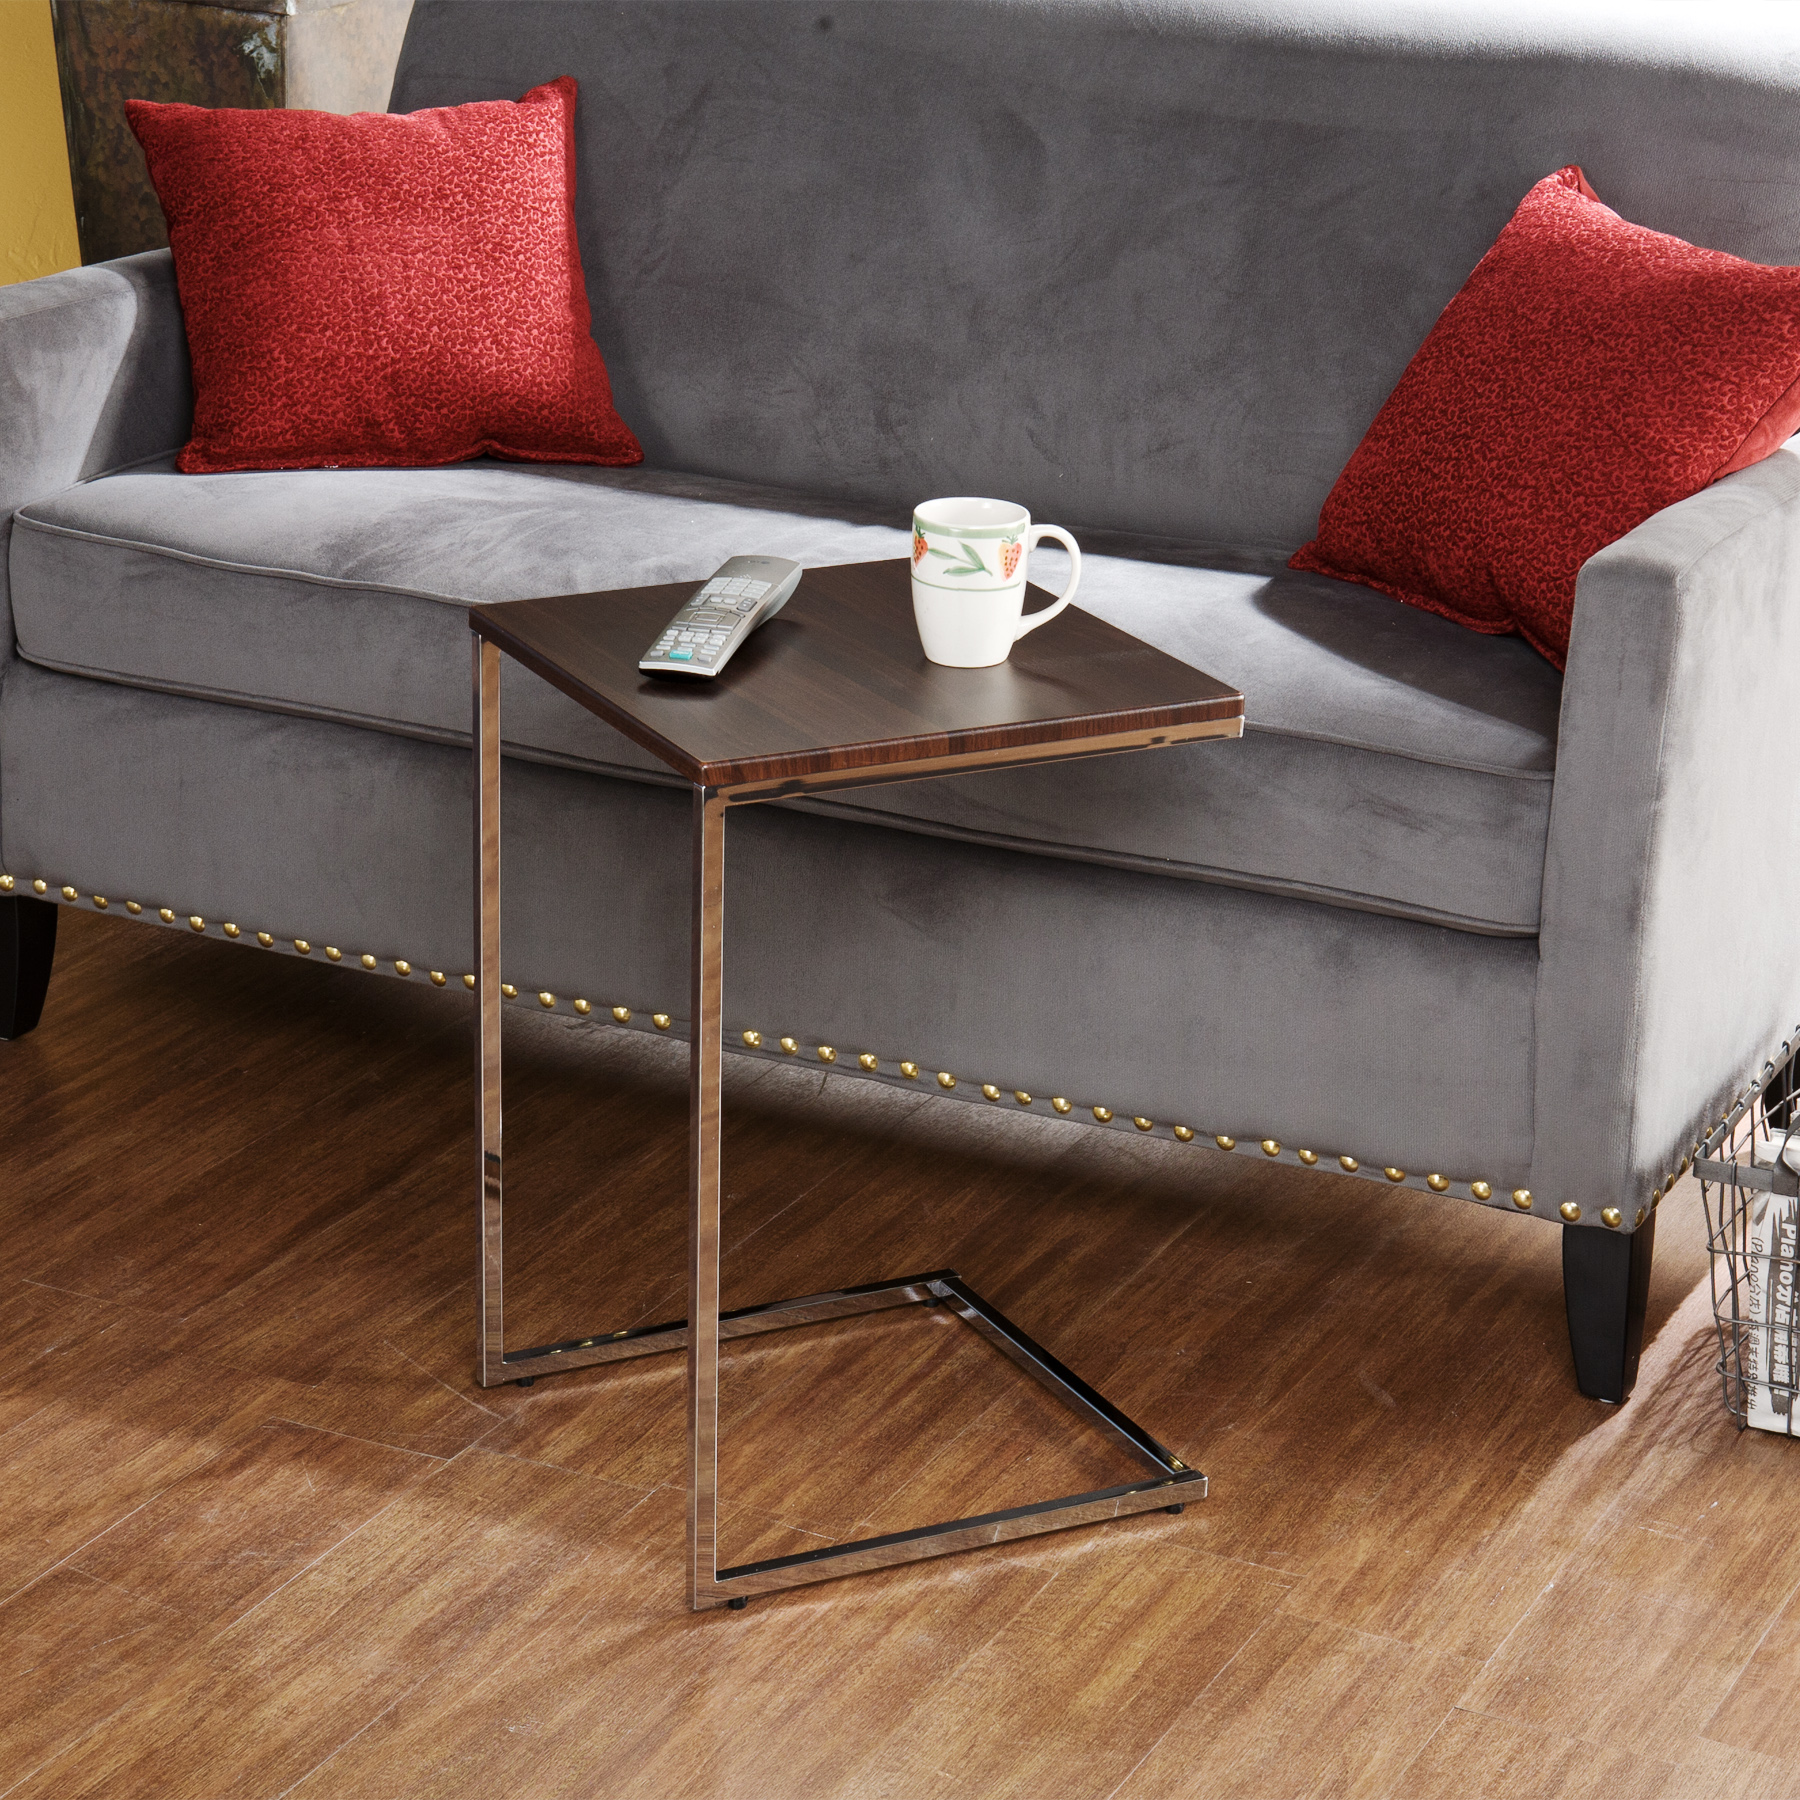 uncategorized design section hello world category furniture inspirations grey velvet sofas with red cushions feat metal couch desk for tray tables ideas wood flooring comfy